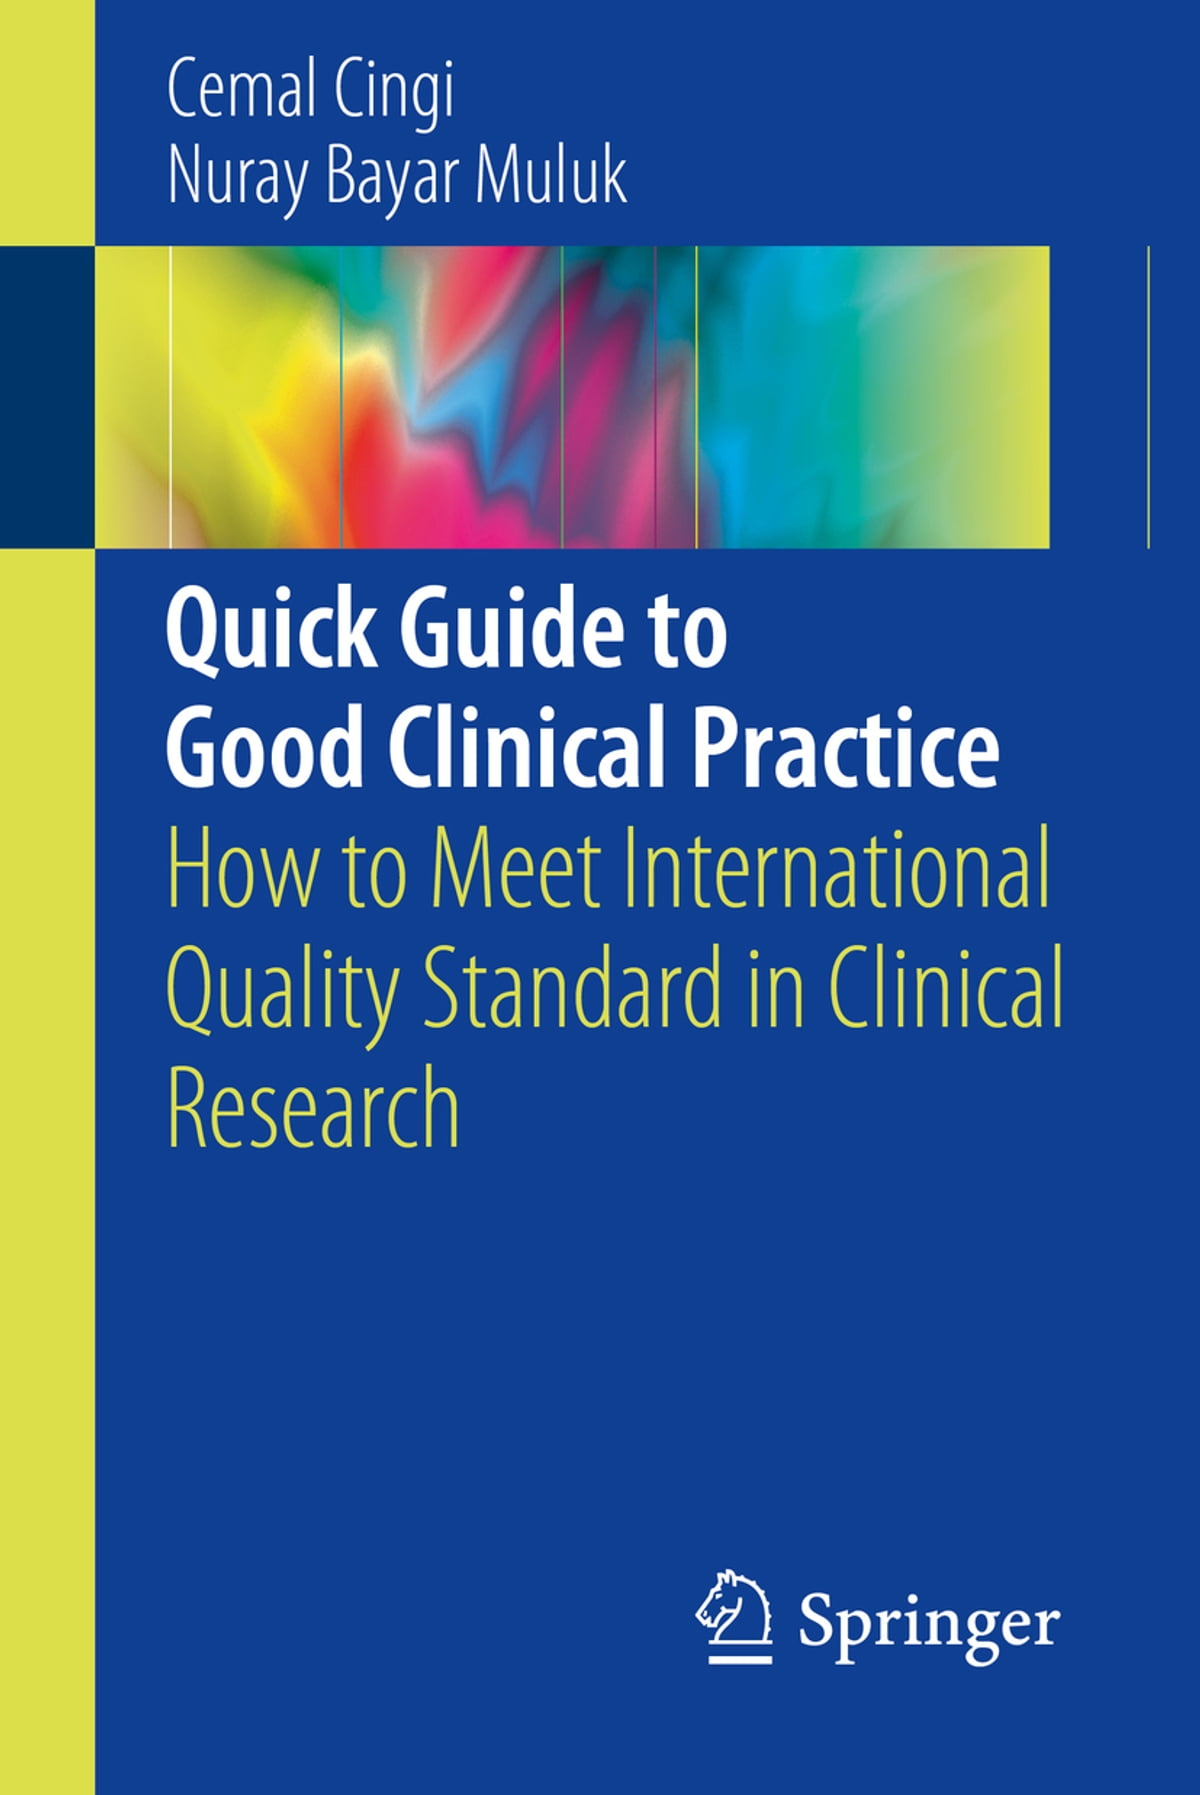 Quick Guide to Good Clinical Practice eBook by Cemal Cingi - 9783319443447  | Rakuten Kobo